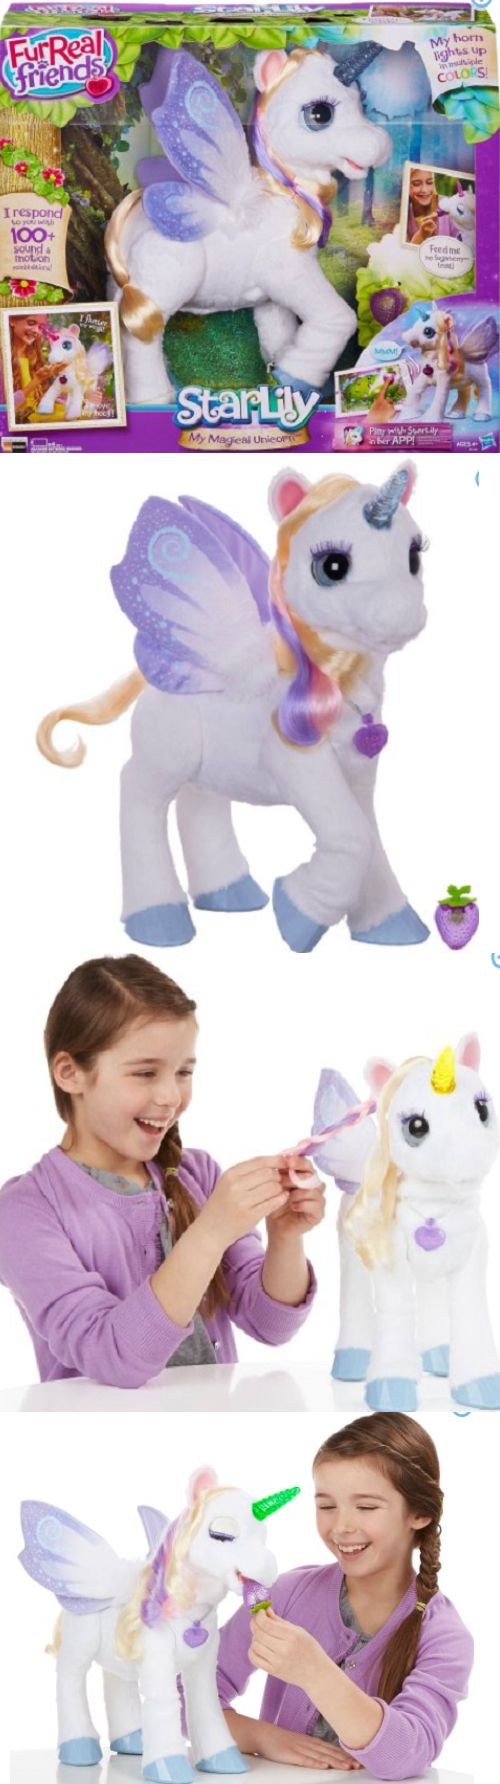 FurReal Friends 38288: Furreal Friends Starlily My Magical Unicorn - New In Box -> BUY IT NOW ONLY: $55 on eBay!